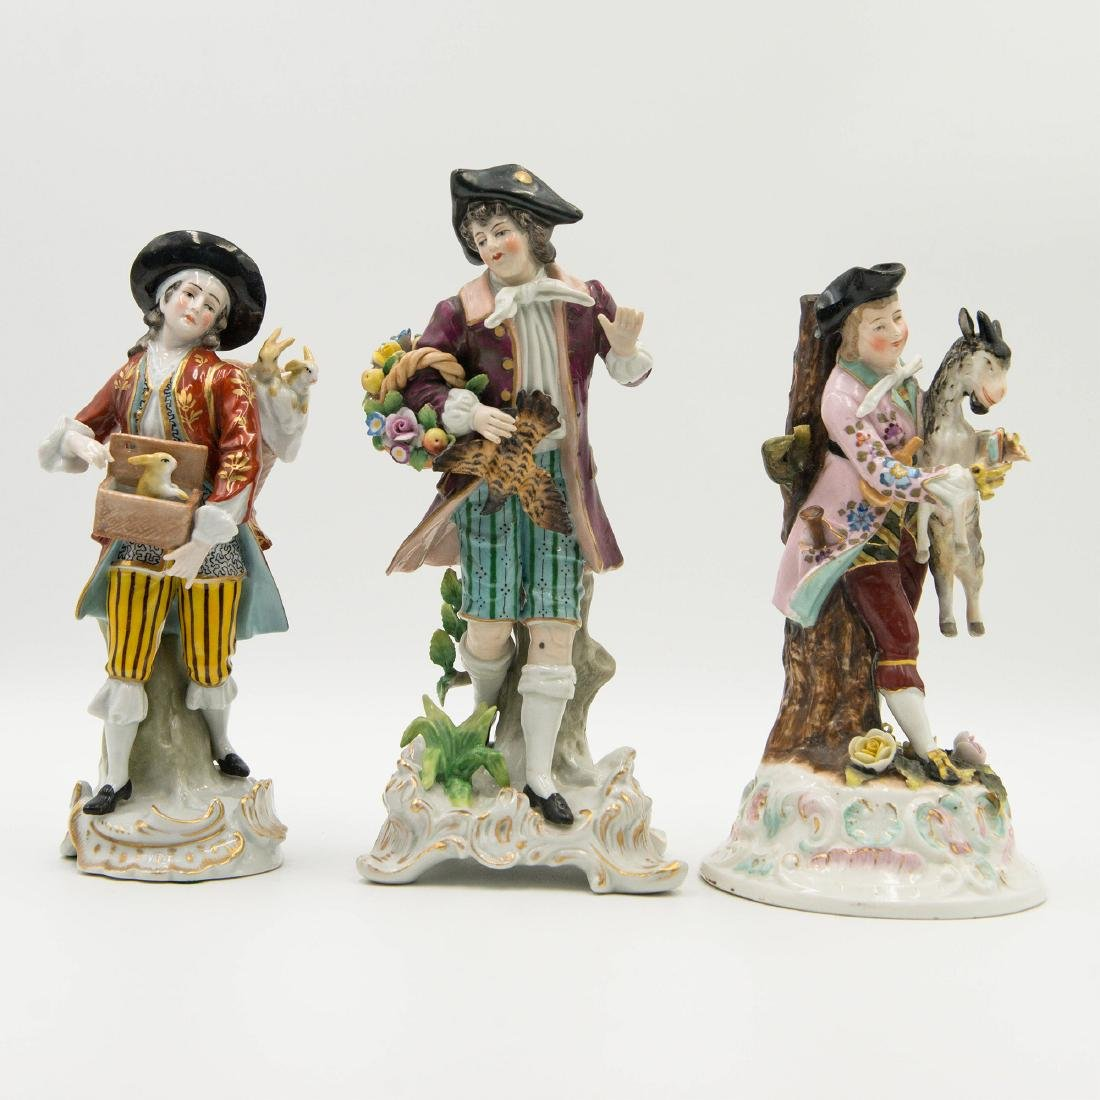 Group of 3 Sitzendorf German Porcelain Figurines